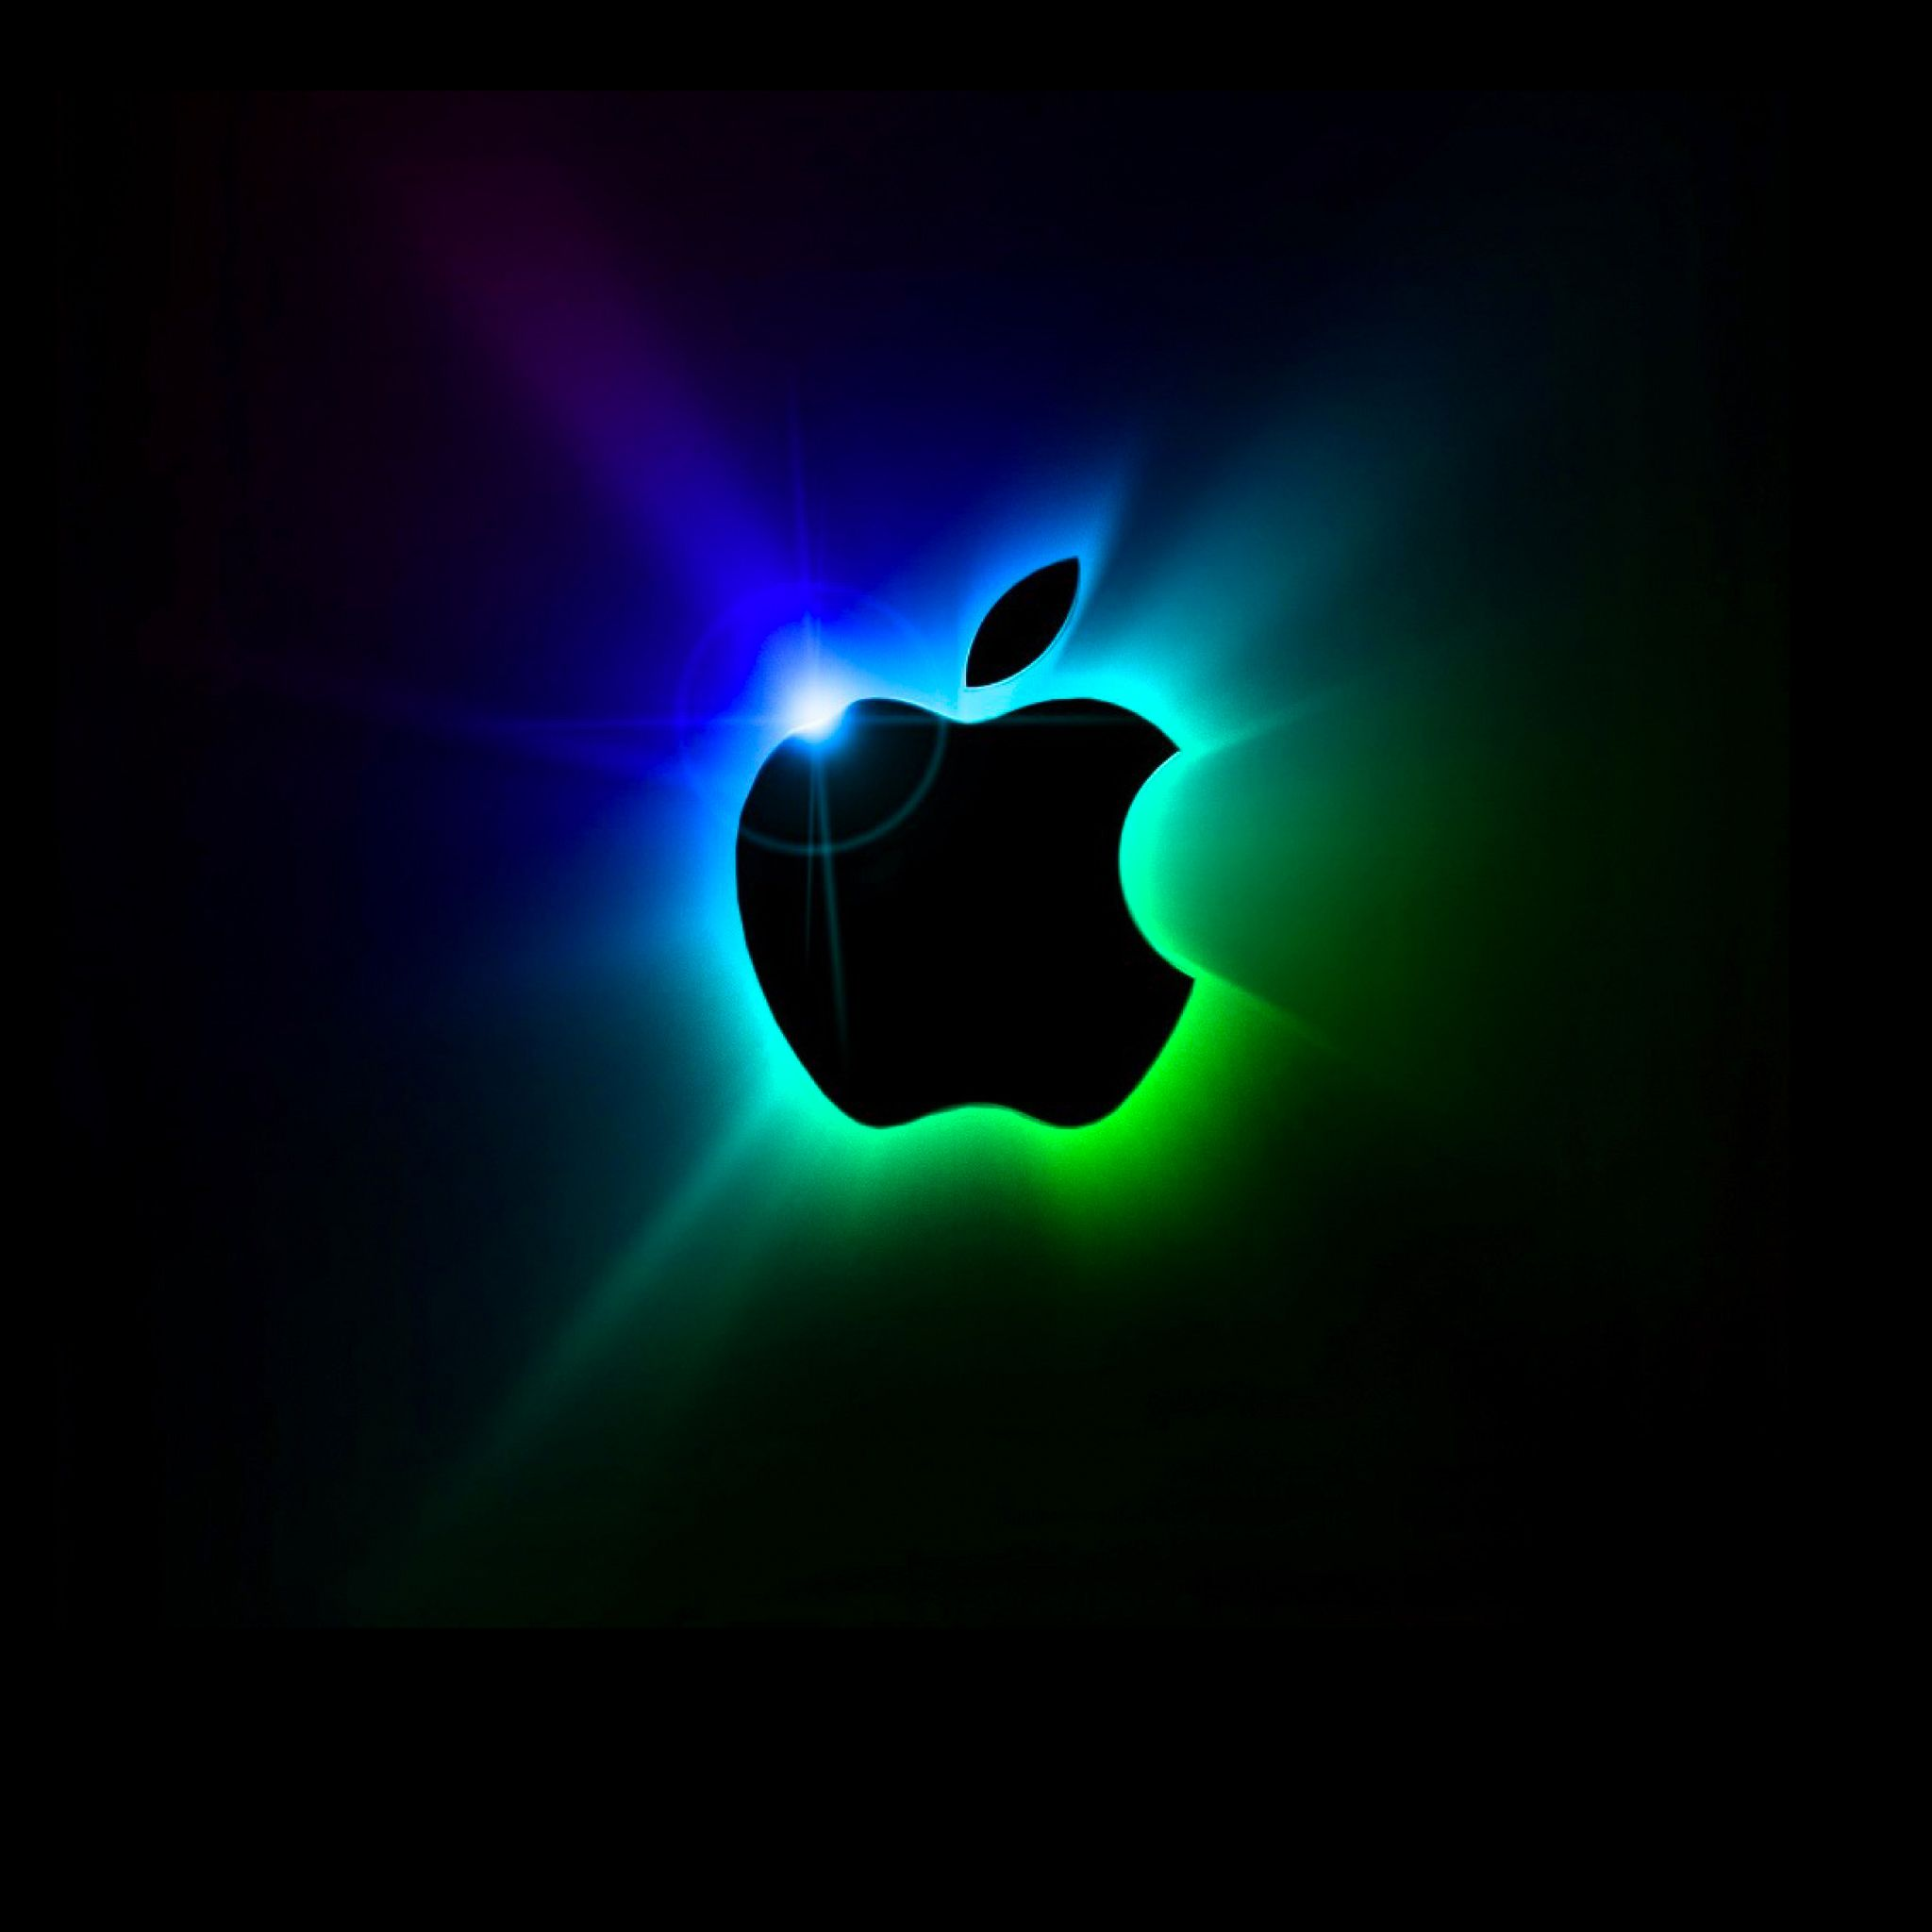 apple iphone 5 wallpaper - bing images | ipad wallpaper! | pinterest